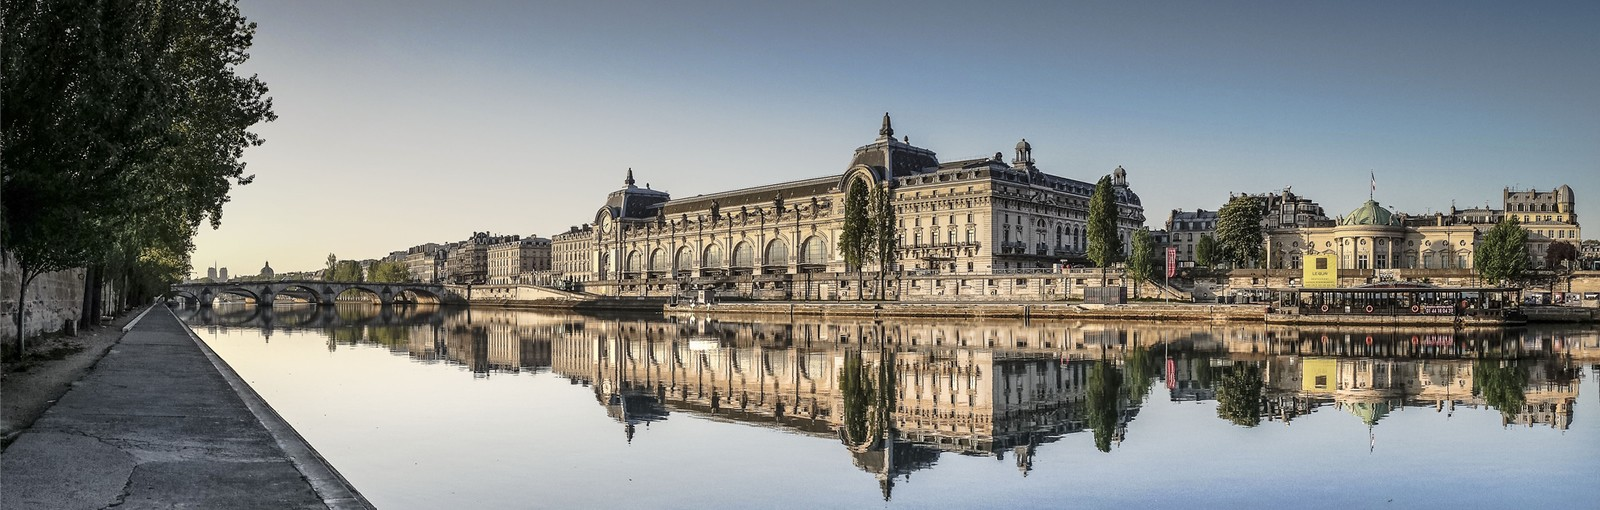 Tours Private Orsay museum tour with hotel pick-up - Museum Guided Tours - Paris Tours